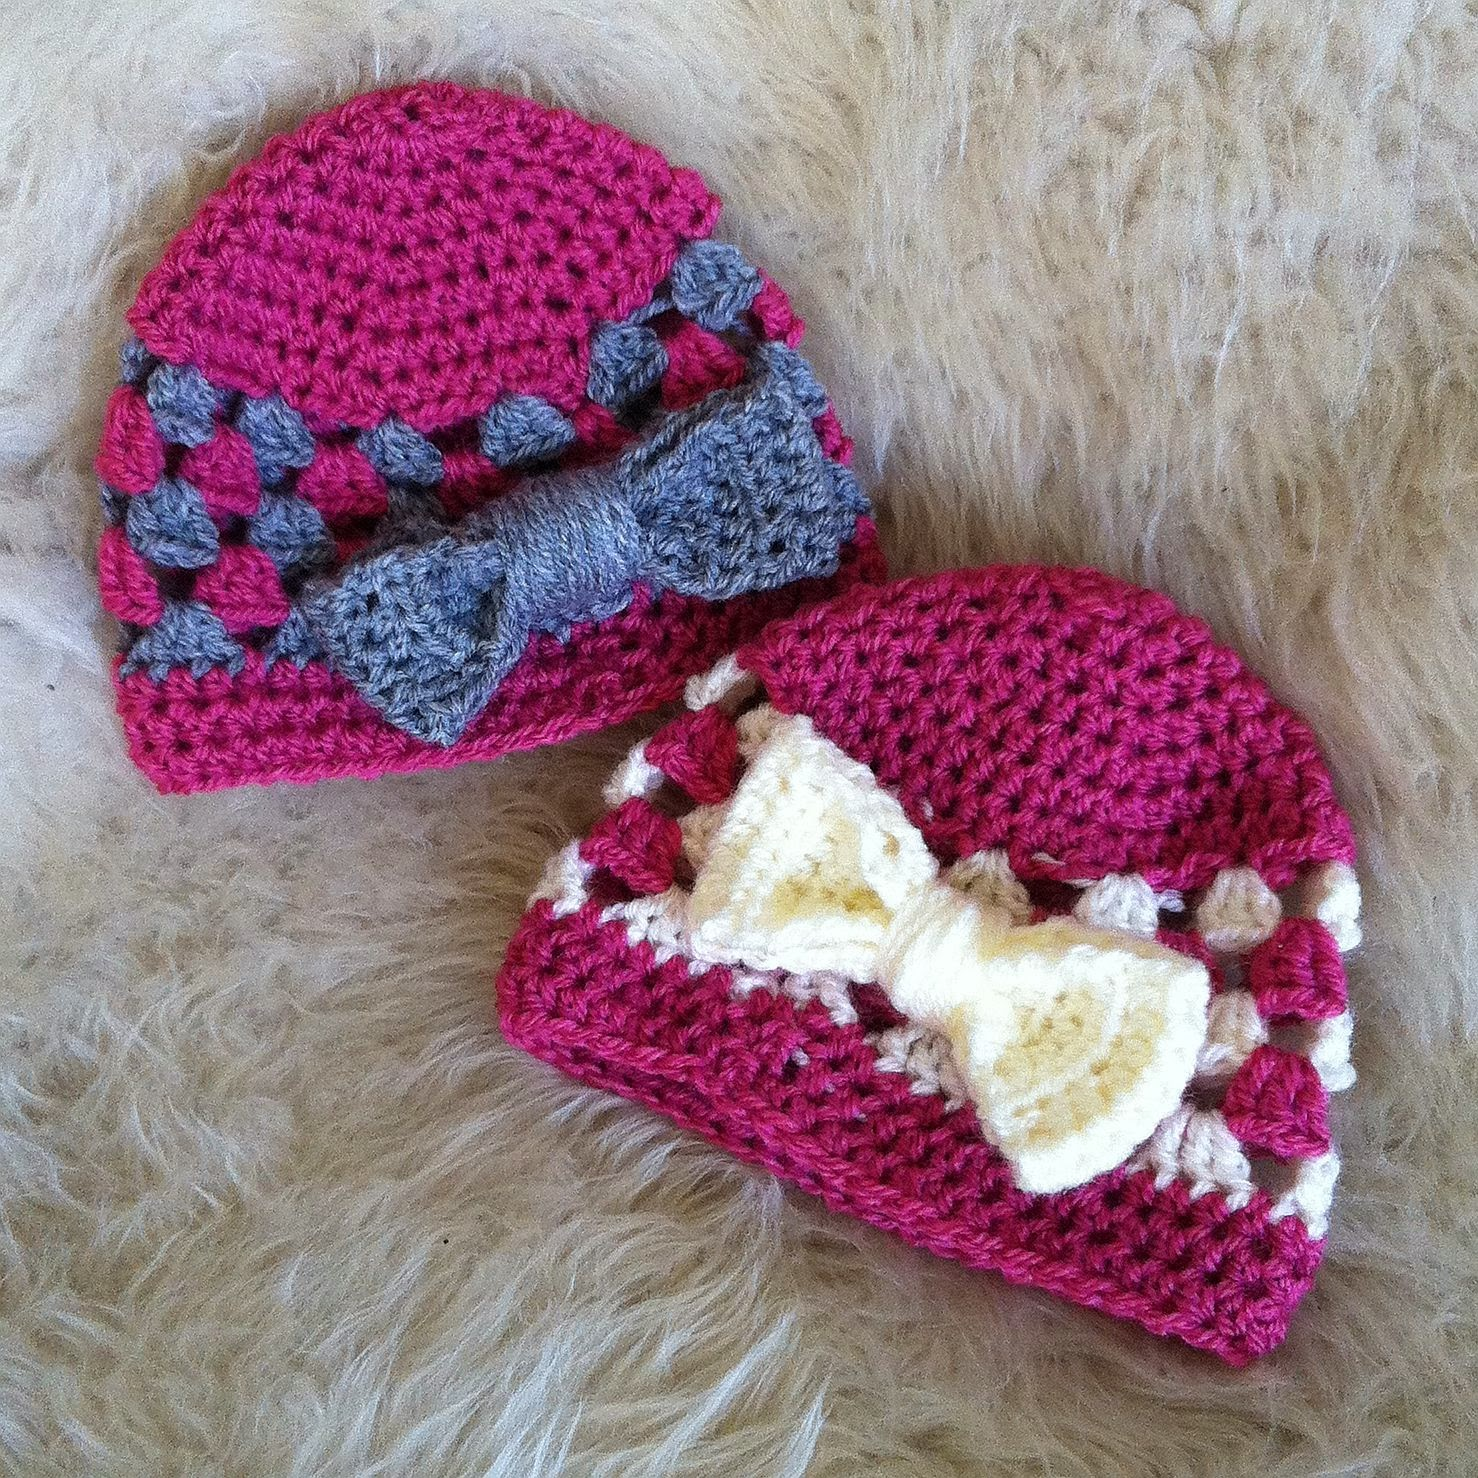 Crocheting Crazy : Crochet Crazy: For the Love of Crochet Hats